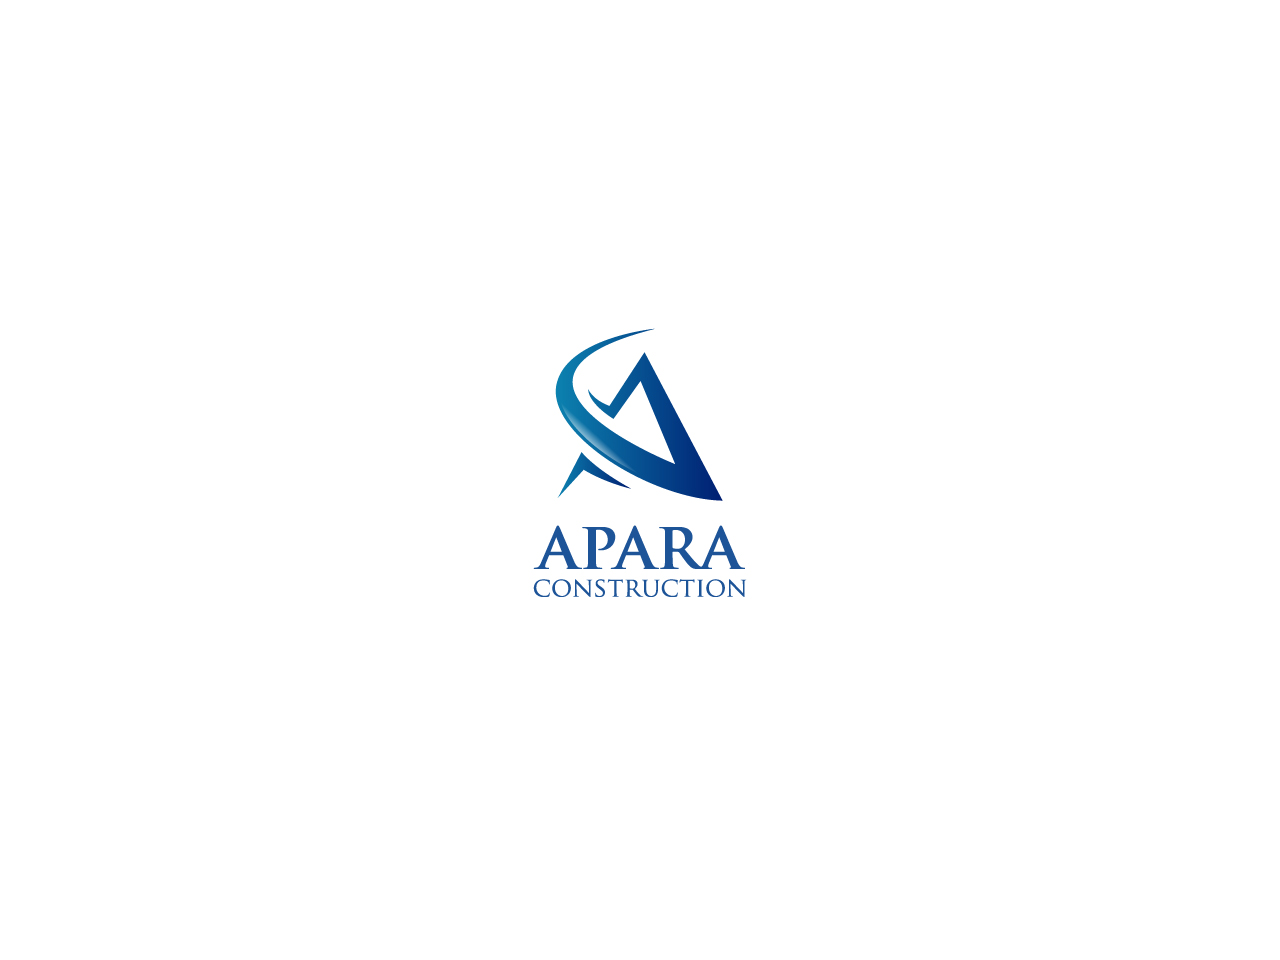 Logo Design by Kenneth Luna - Entry No. 44 in the Logo Design Contest Apara Construction Logo Design.